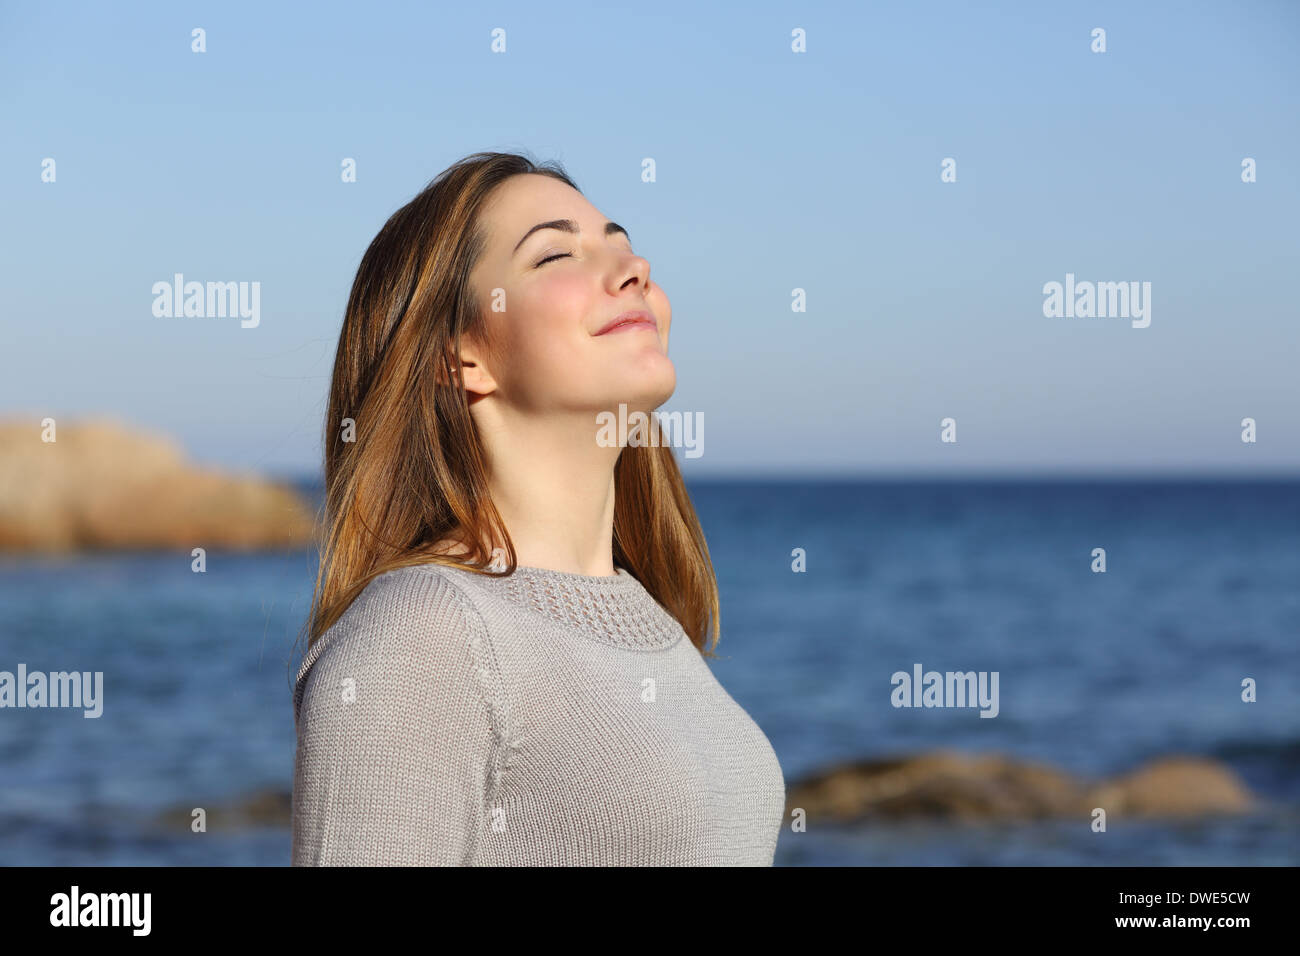 Happy relaxed woman breathing deep fresh air on the beach with the horizon in the background - Stock Image